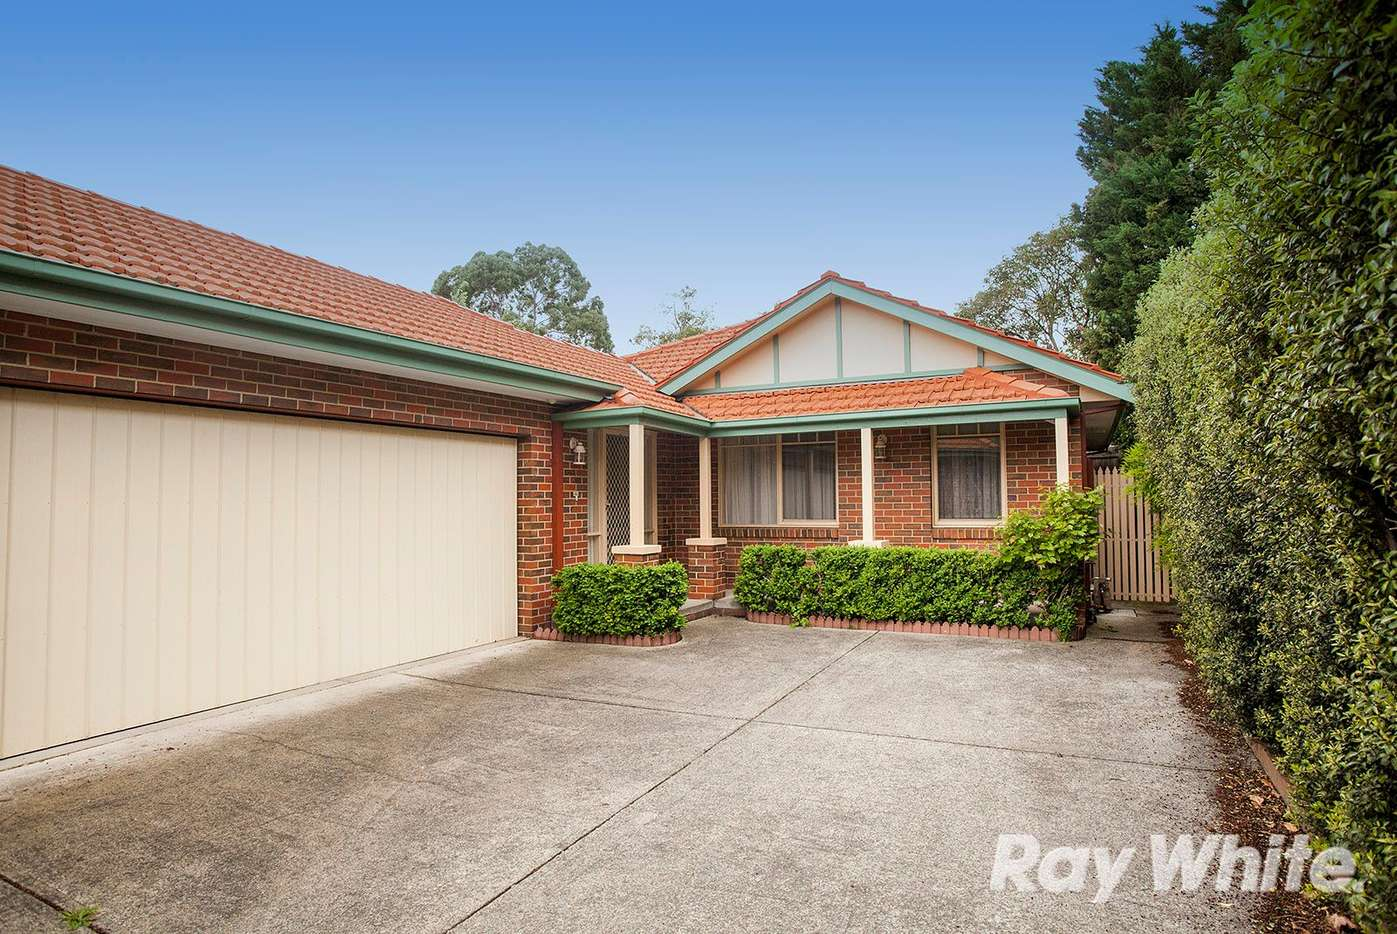 Main view of Homely house listing, 2/20 Kalimna Street, Balwyn, VIC 3103